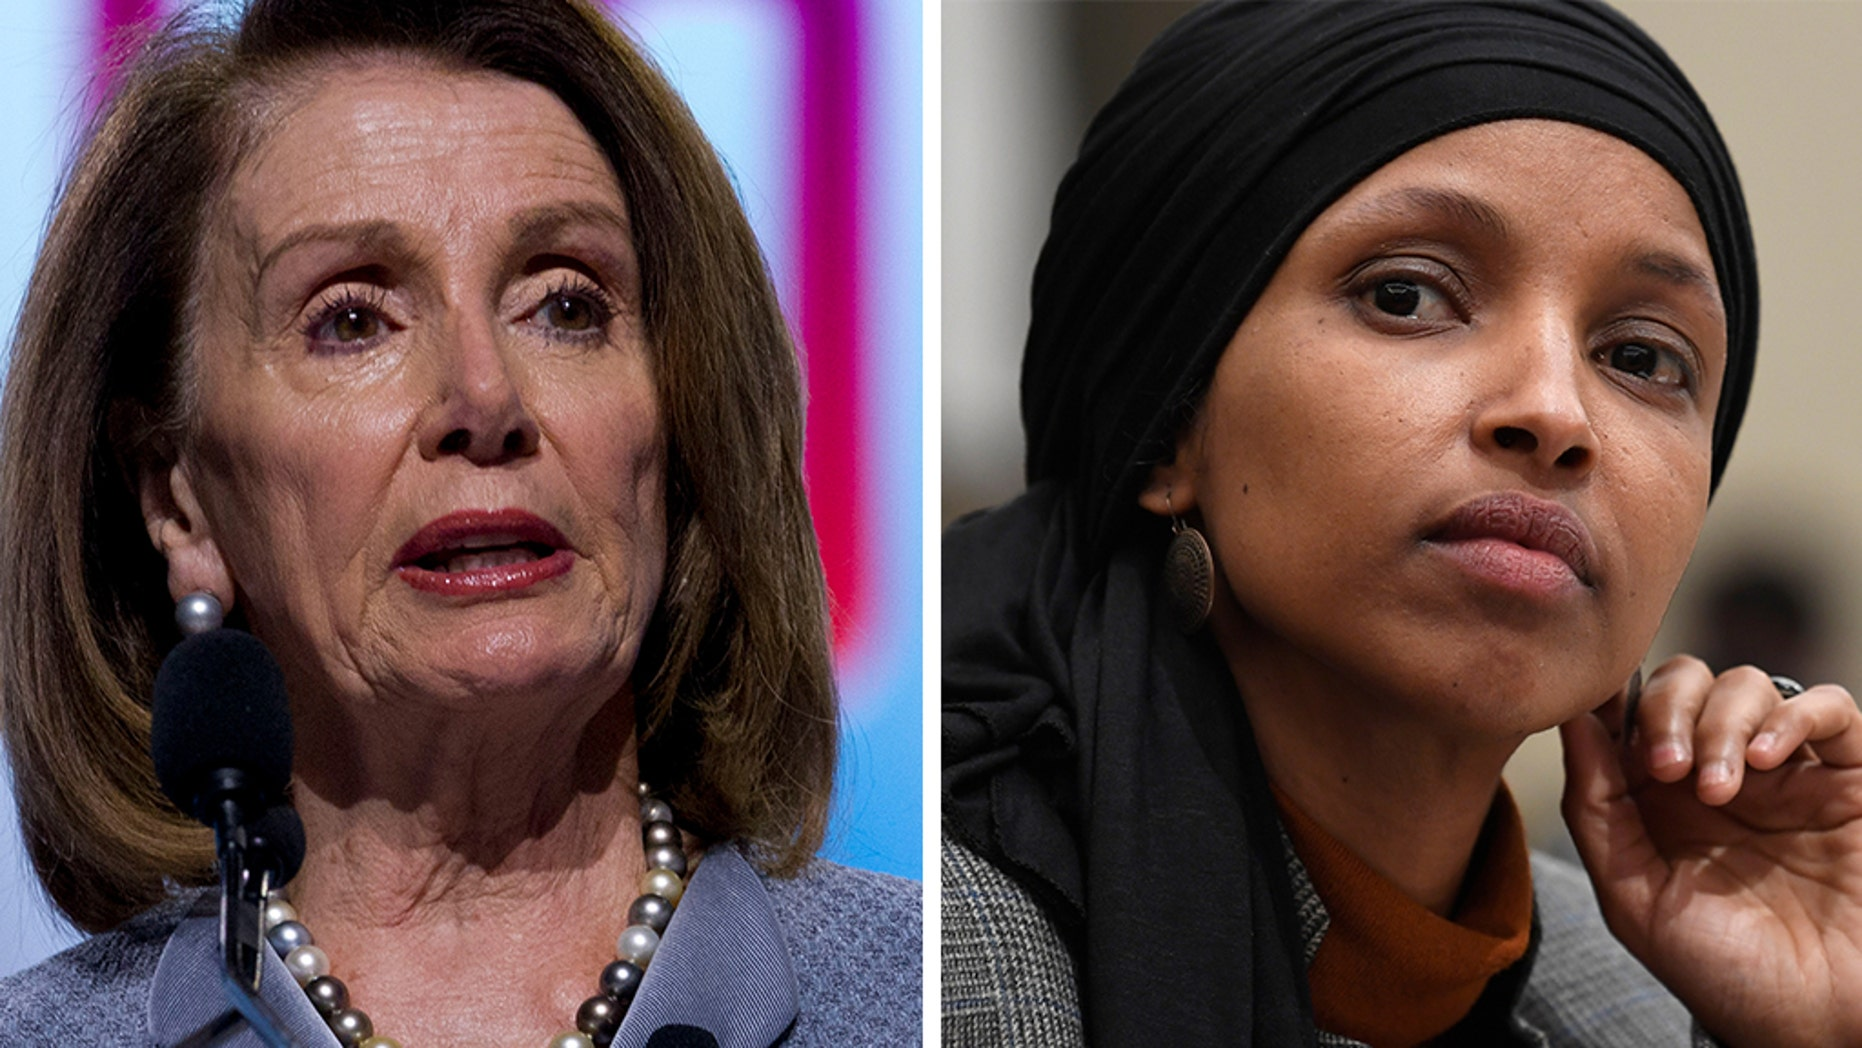 Speaker of the House Nancy Pelosi, D-Calif, undercut fellow Democrat Ilhan Omar, D-Minn., in speech Tuesday that apparently referred to her repeated anti-Semitic comments.